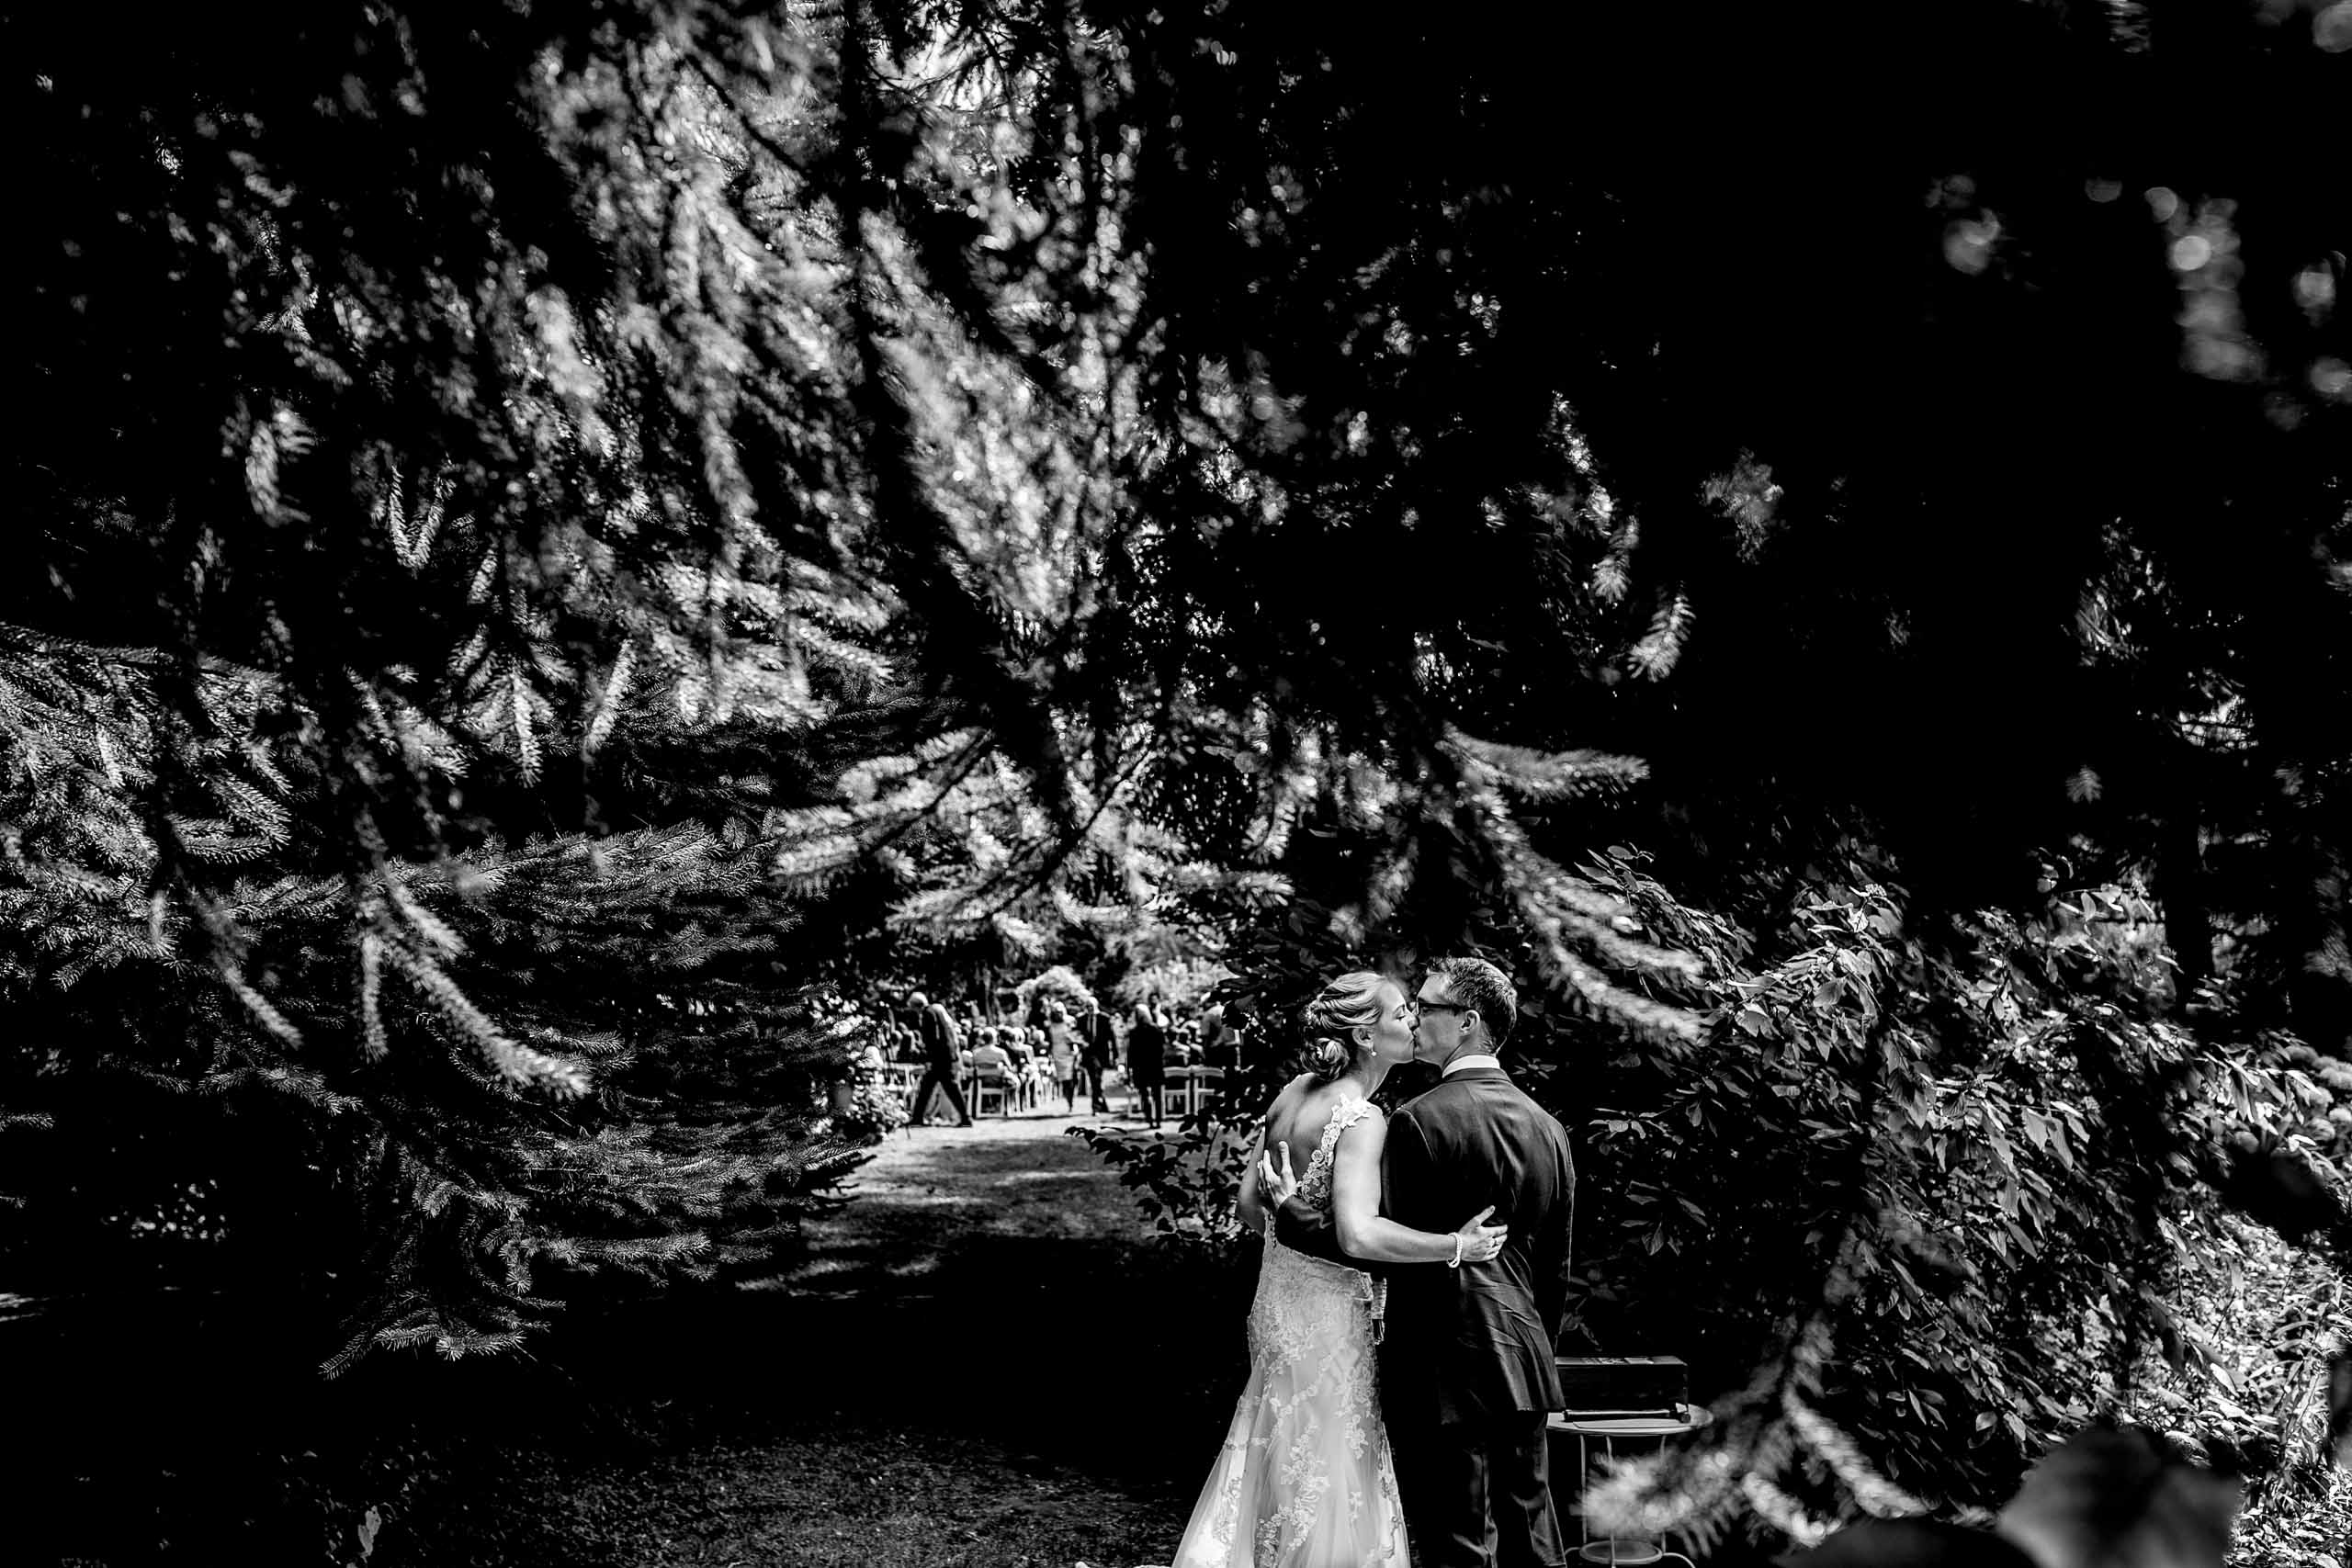 Bride and groom embracing moments after their Mt Hood Organic Farms wedding ceremony near Hood River Oregon